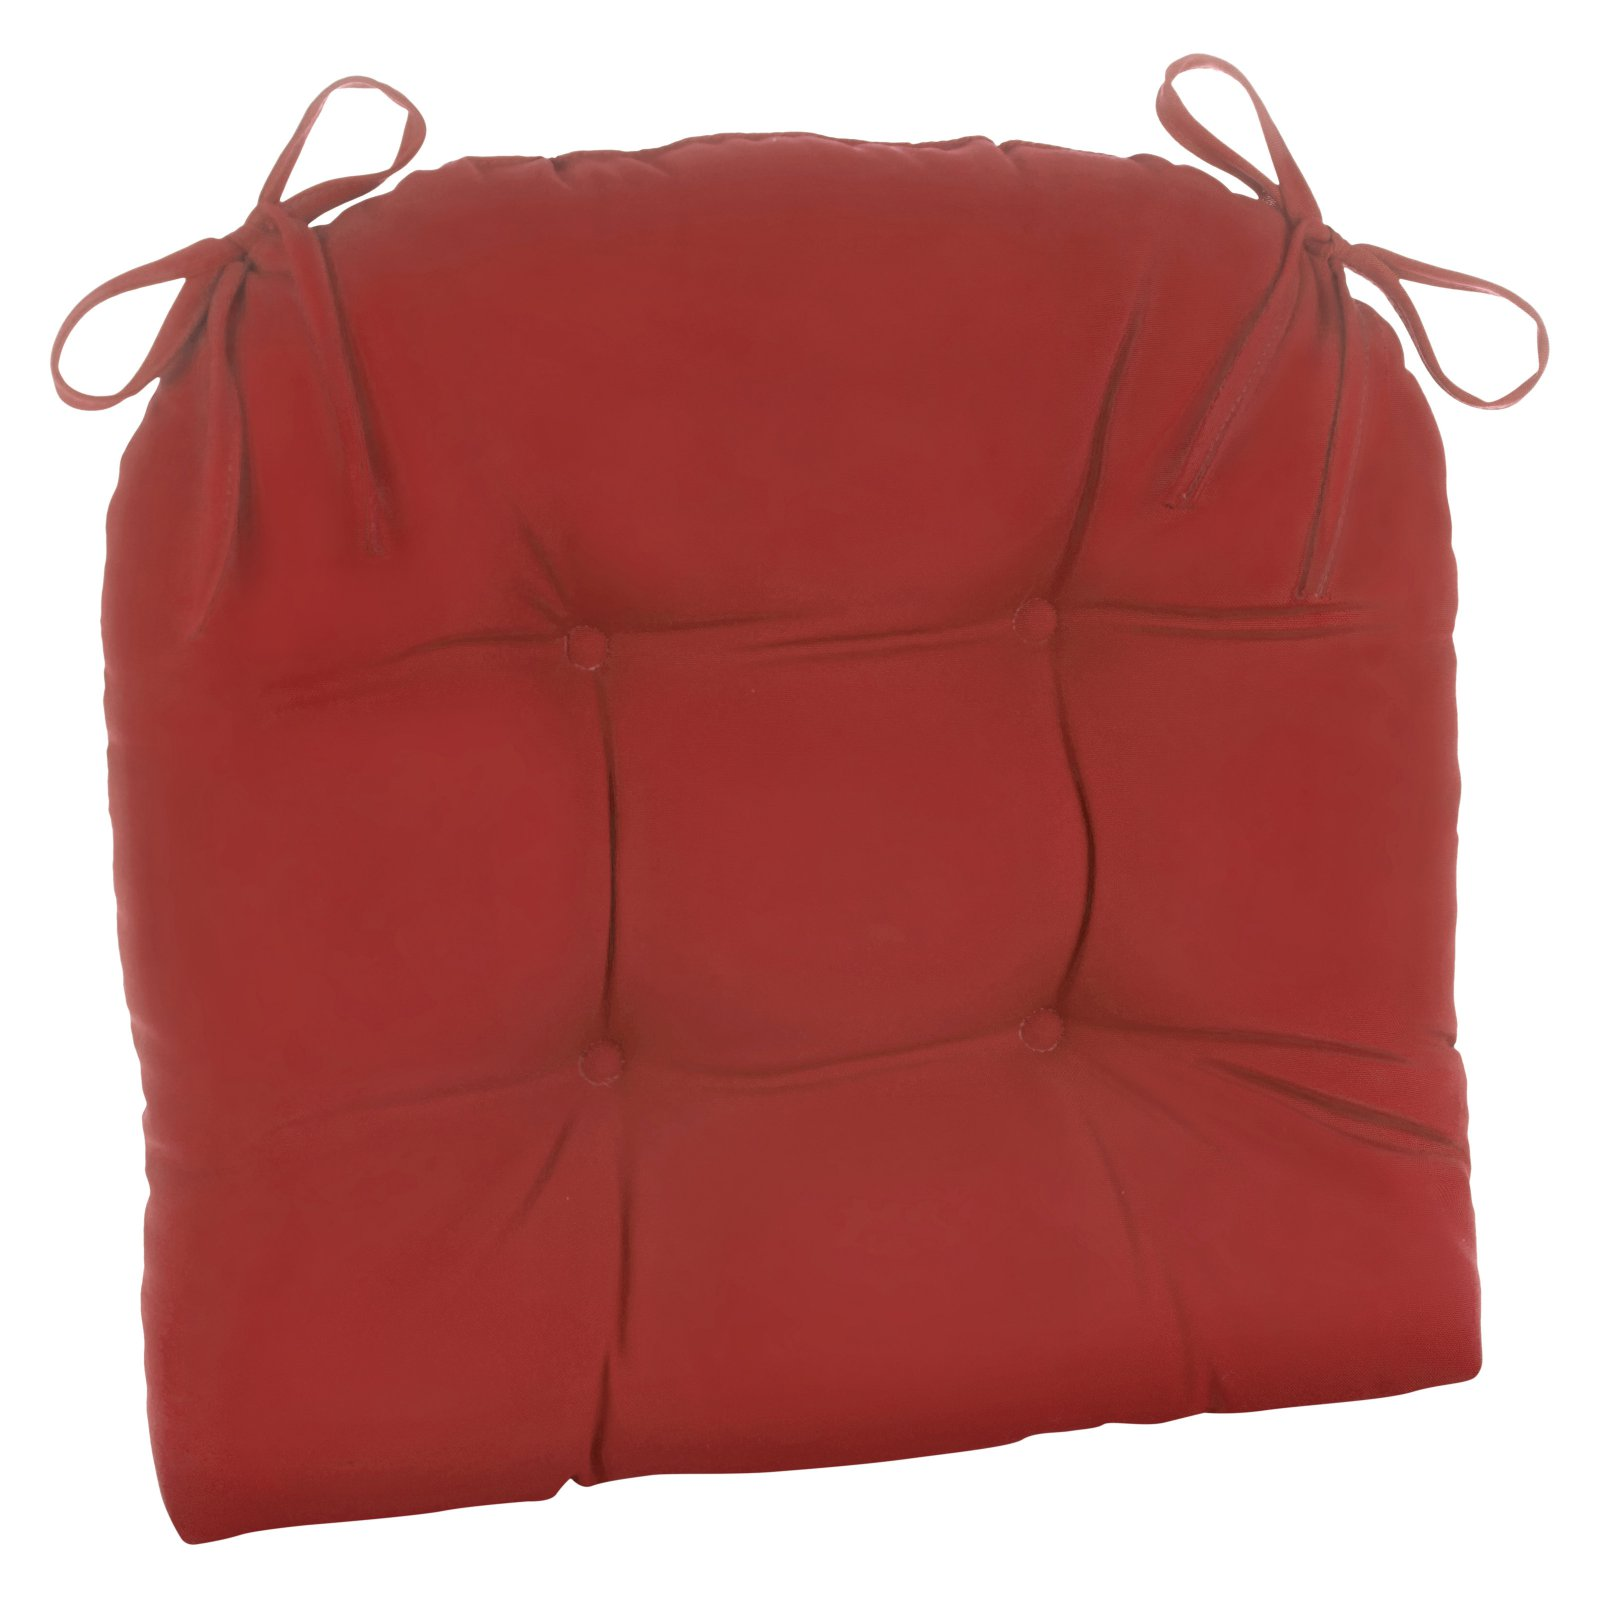 Delicieux Klear Vu Easy Care Extra Large Outdoor Chair Cushion